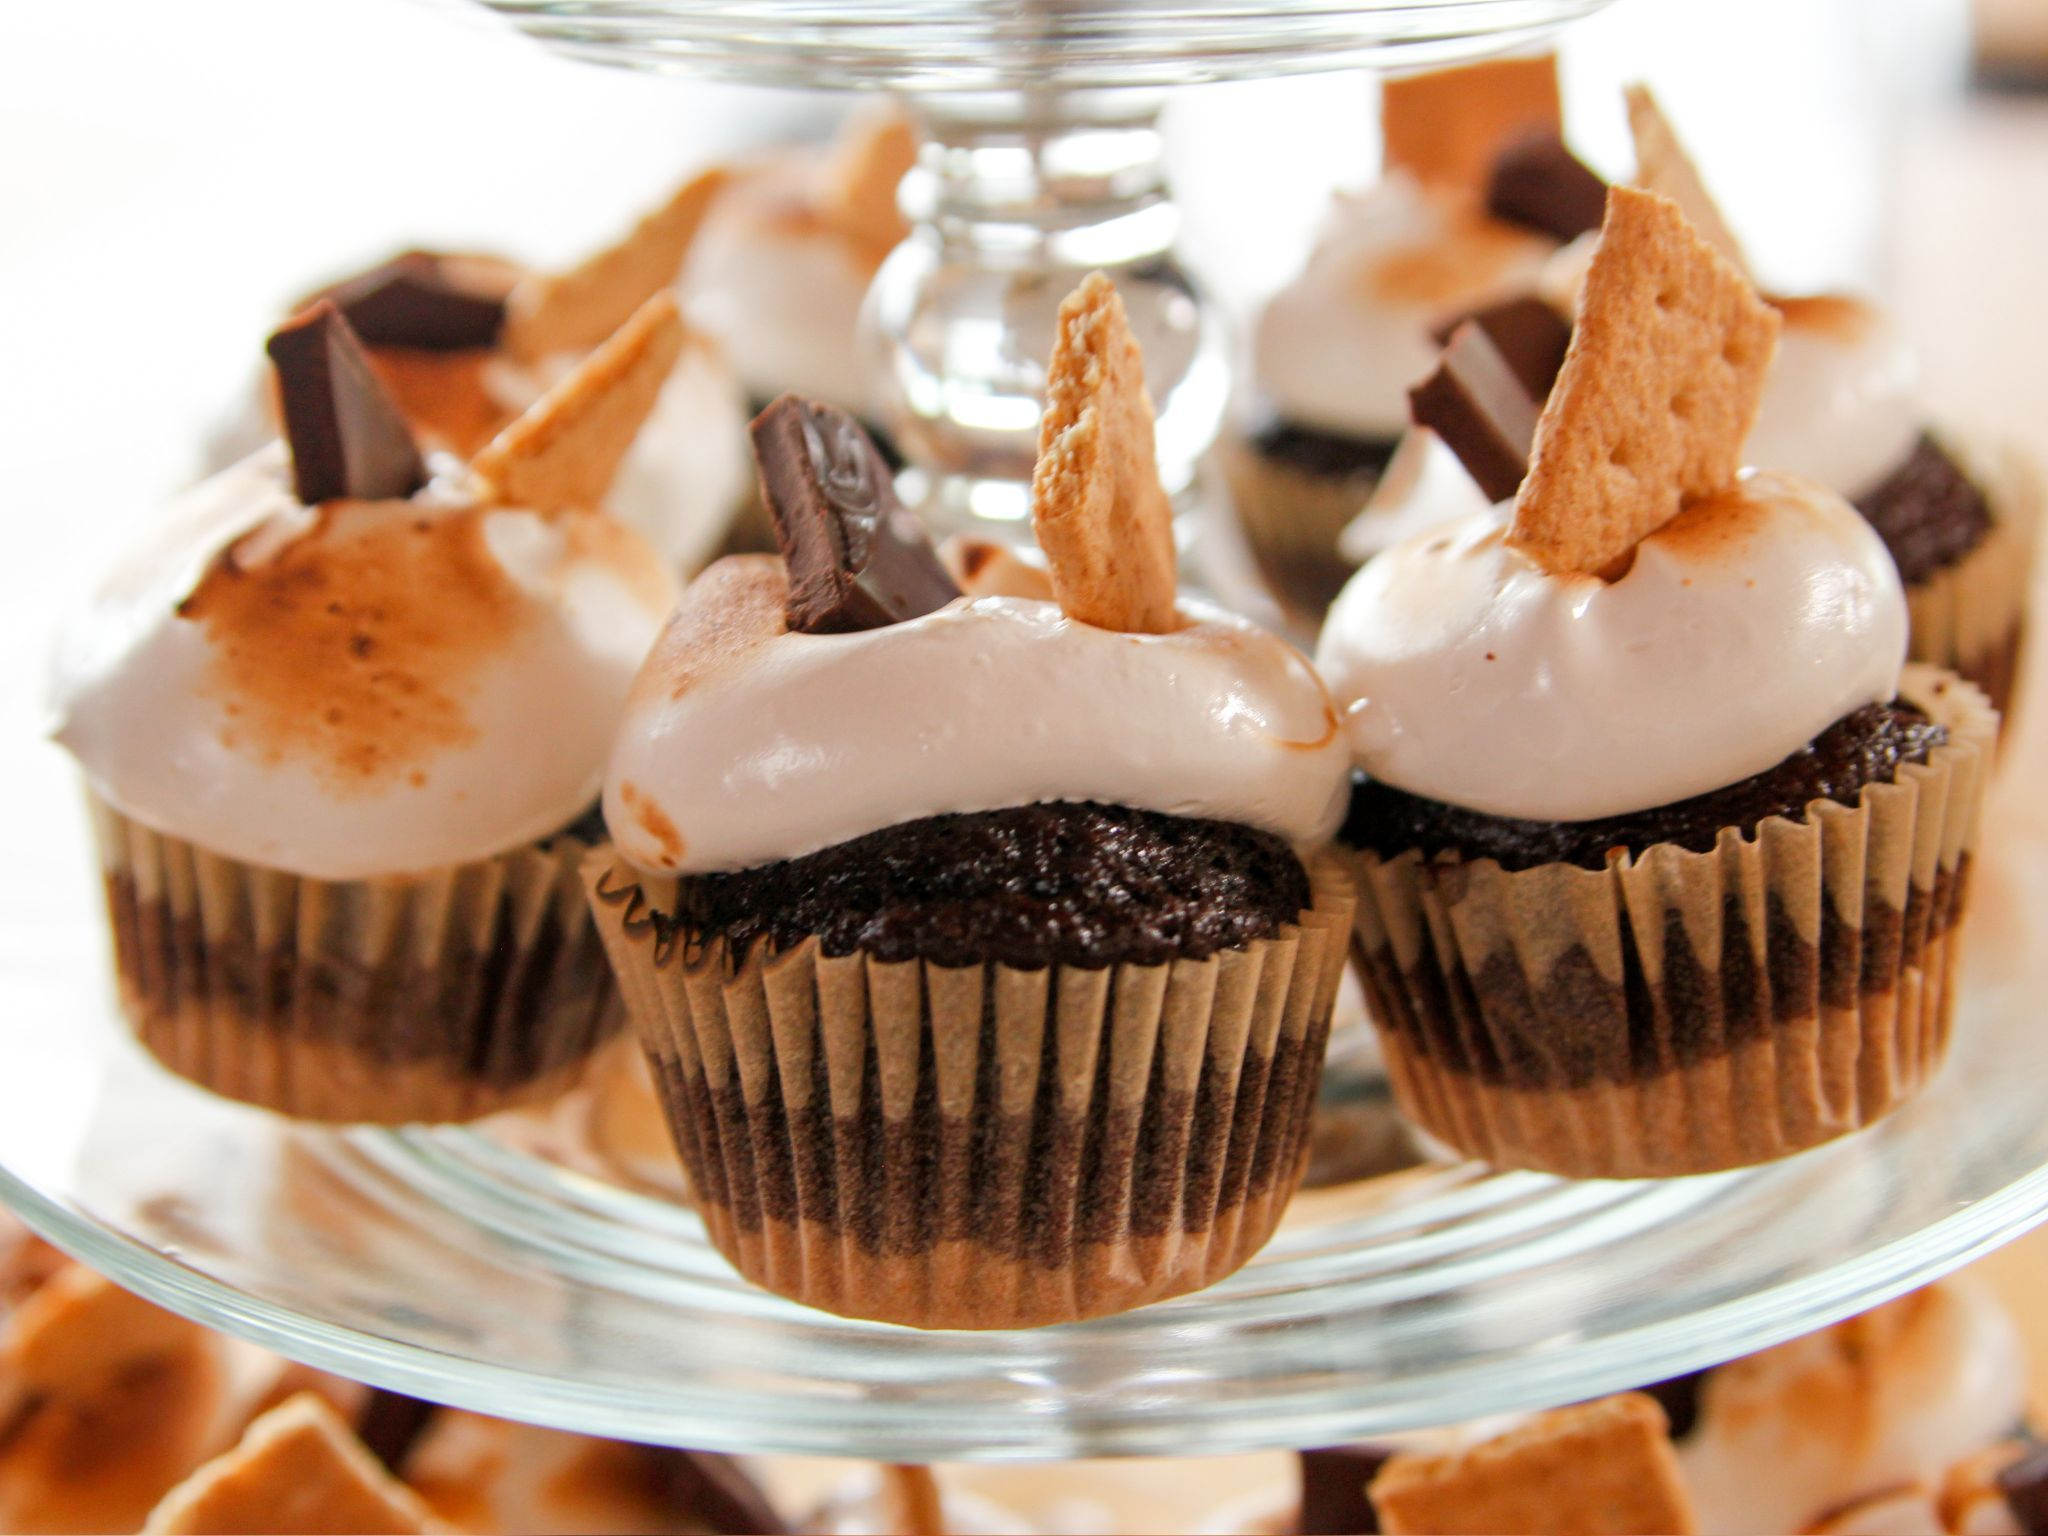 S'Mores Cupcakes (can be halved) Super S'Mores Cupcakes recipe from Ree Drummond via Food Network(can be halved) Super S'Mores Cupcakes recipe from Ree Drummond via Food Network